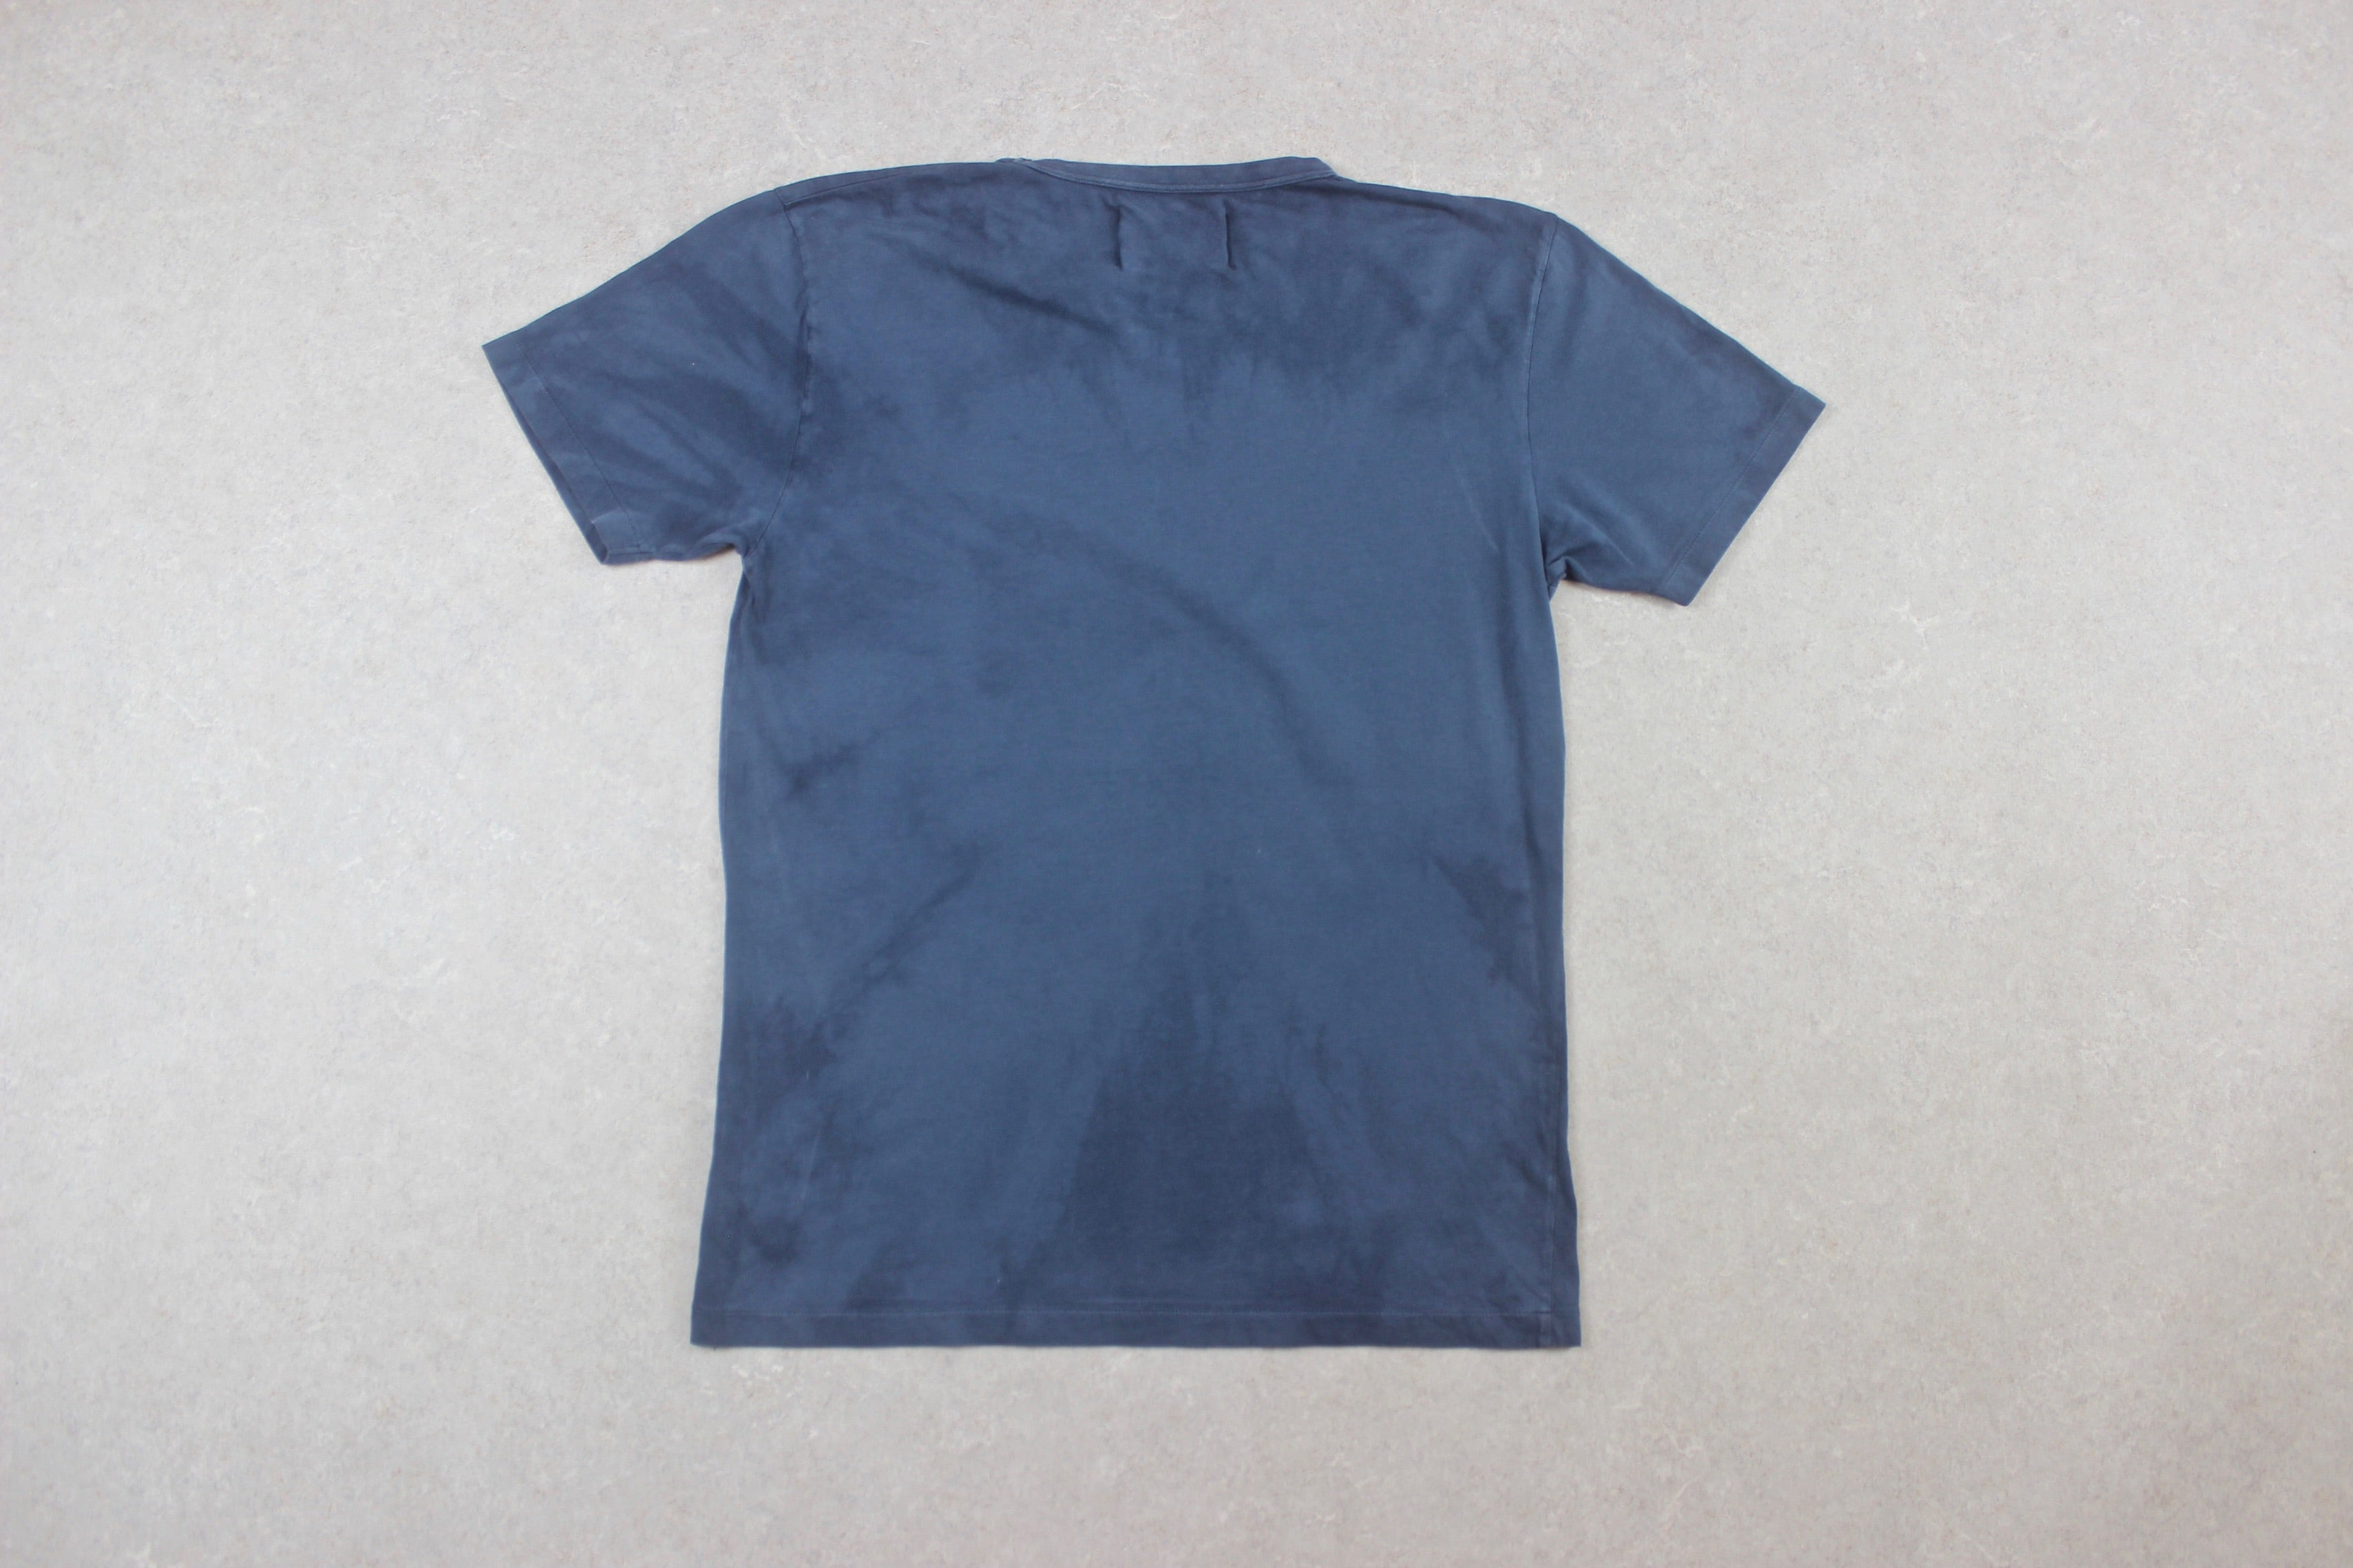 Our Legacy - T Shirt - Blue - 46/Small